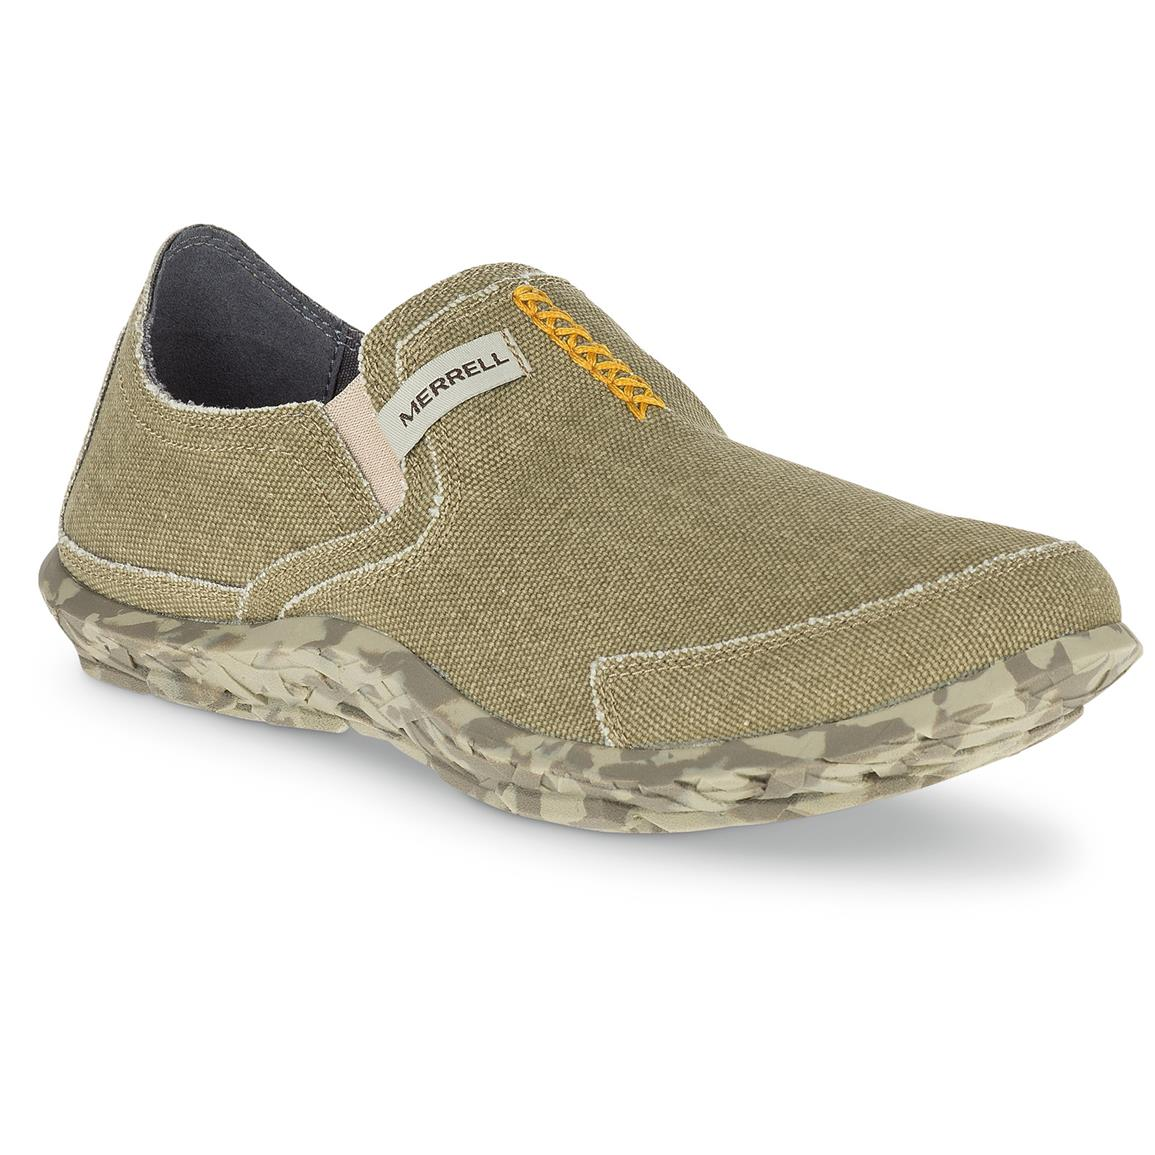 Merrell Men's Slipper Shoes, Sand